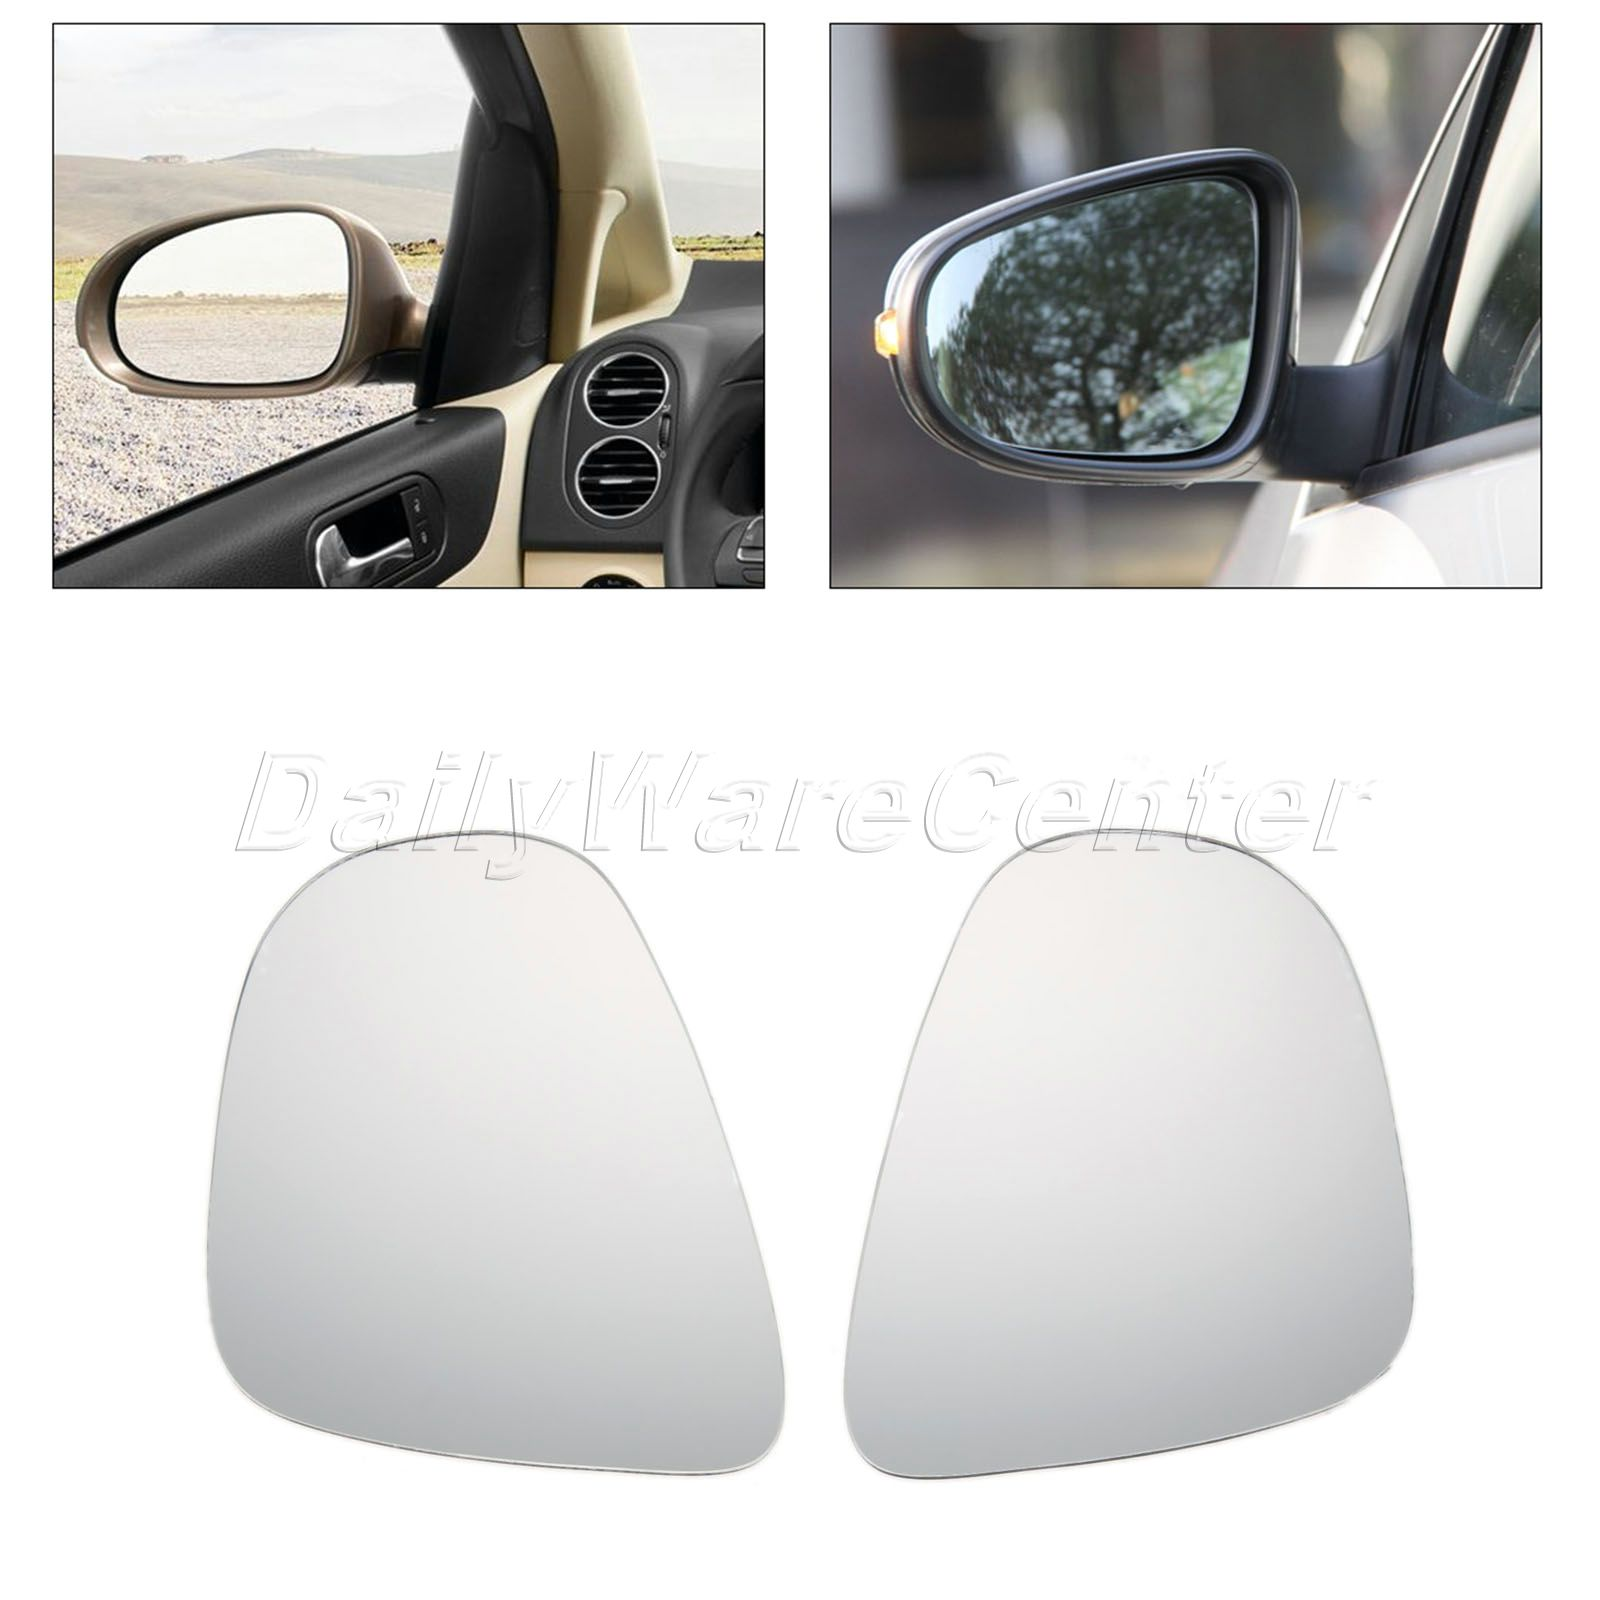 2pcs car styling heated door wing mirror glass left right side 2pcs car styling heated door wing mirror glass left right side mirrors for vw golf mk6 touran curved car rearview heating mirror in mirror covers from planetlyrics Image collections